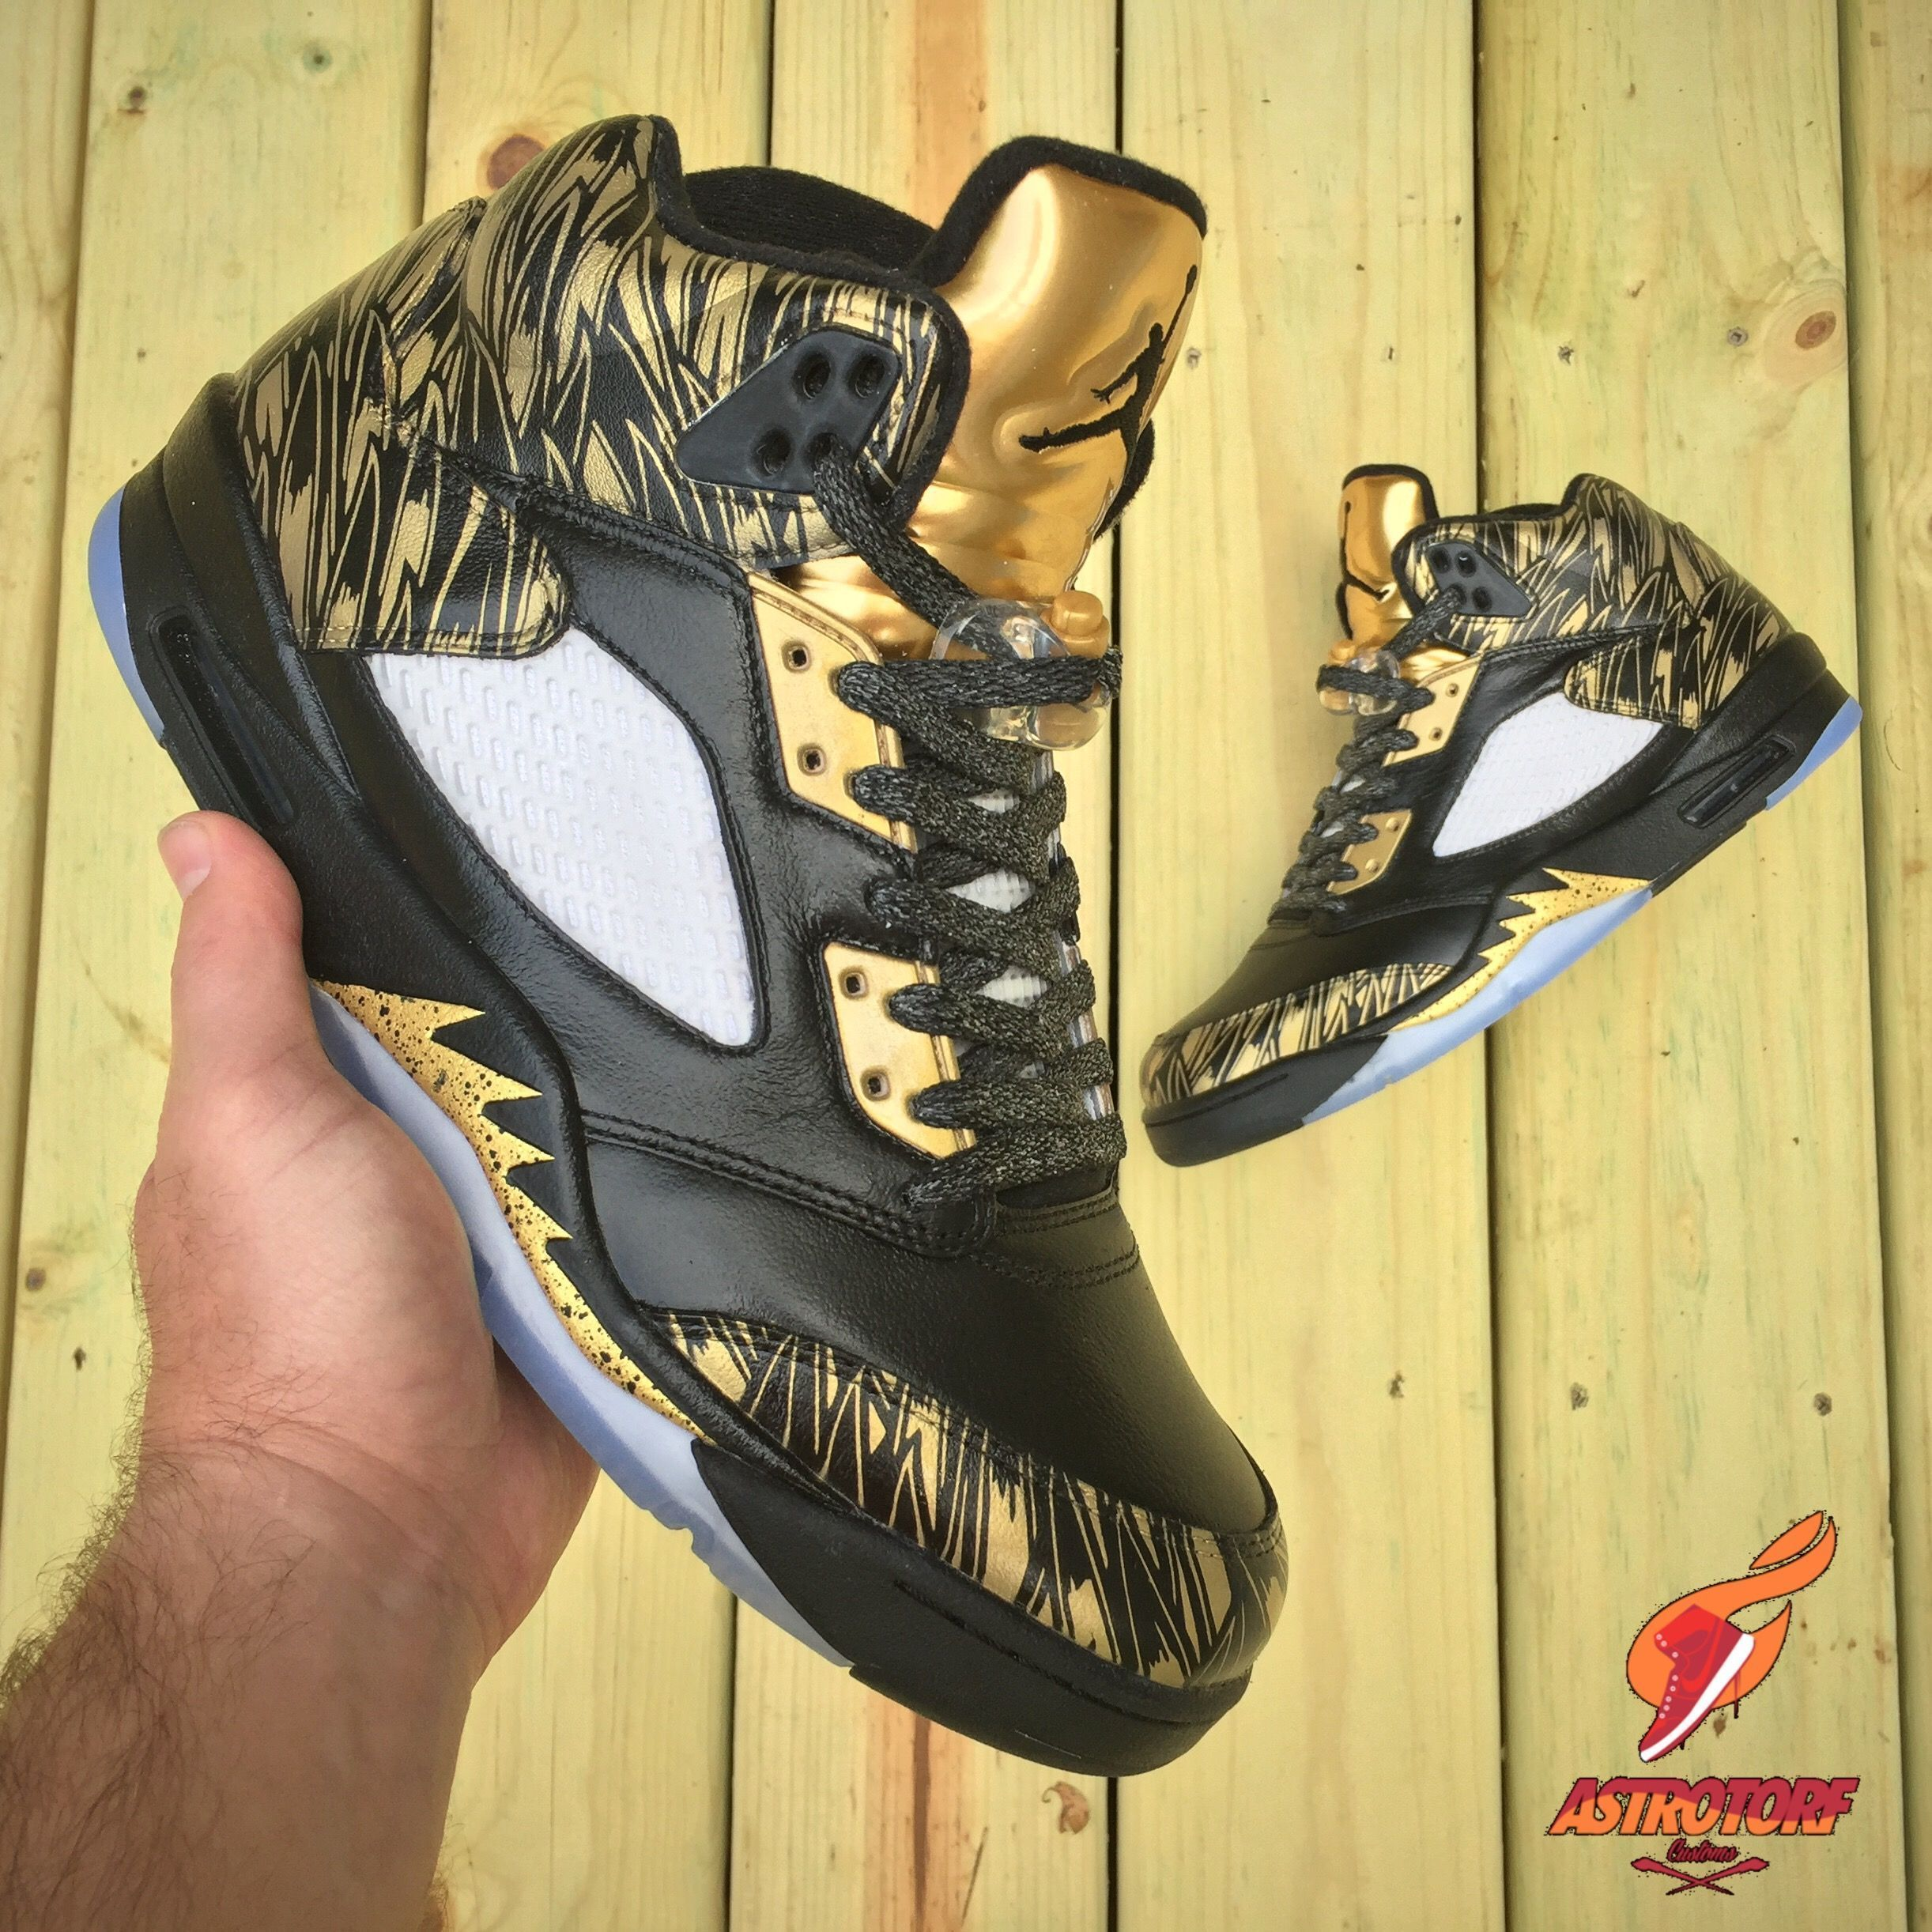 b4c25fc520e53b Astrotorf Customs Gives The Air Jordan 5 Olympic Some Golden Wings   cruiseoutfits